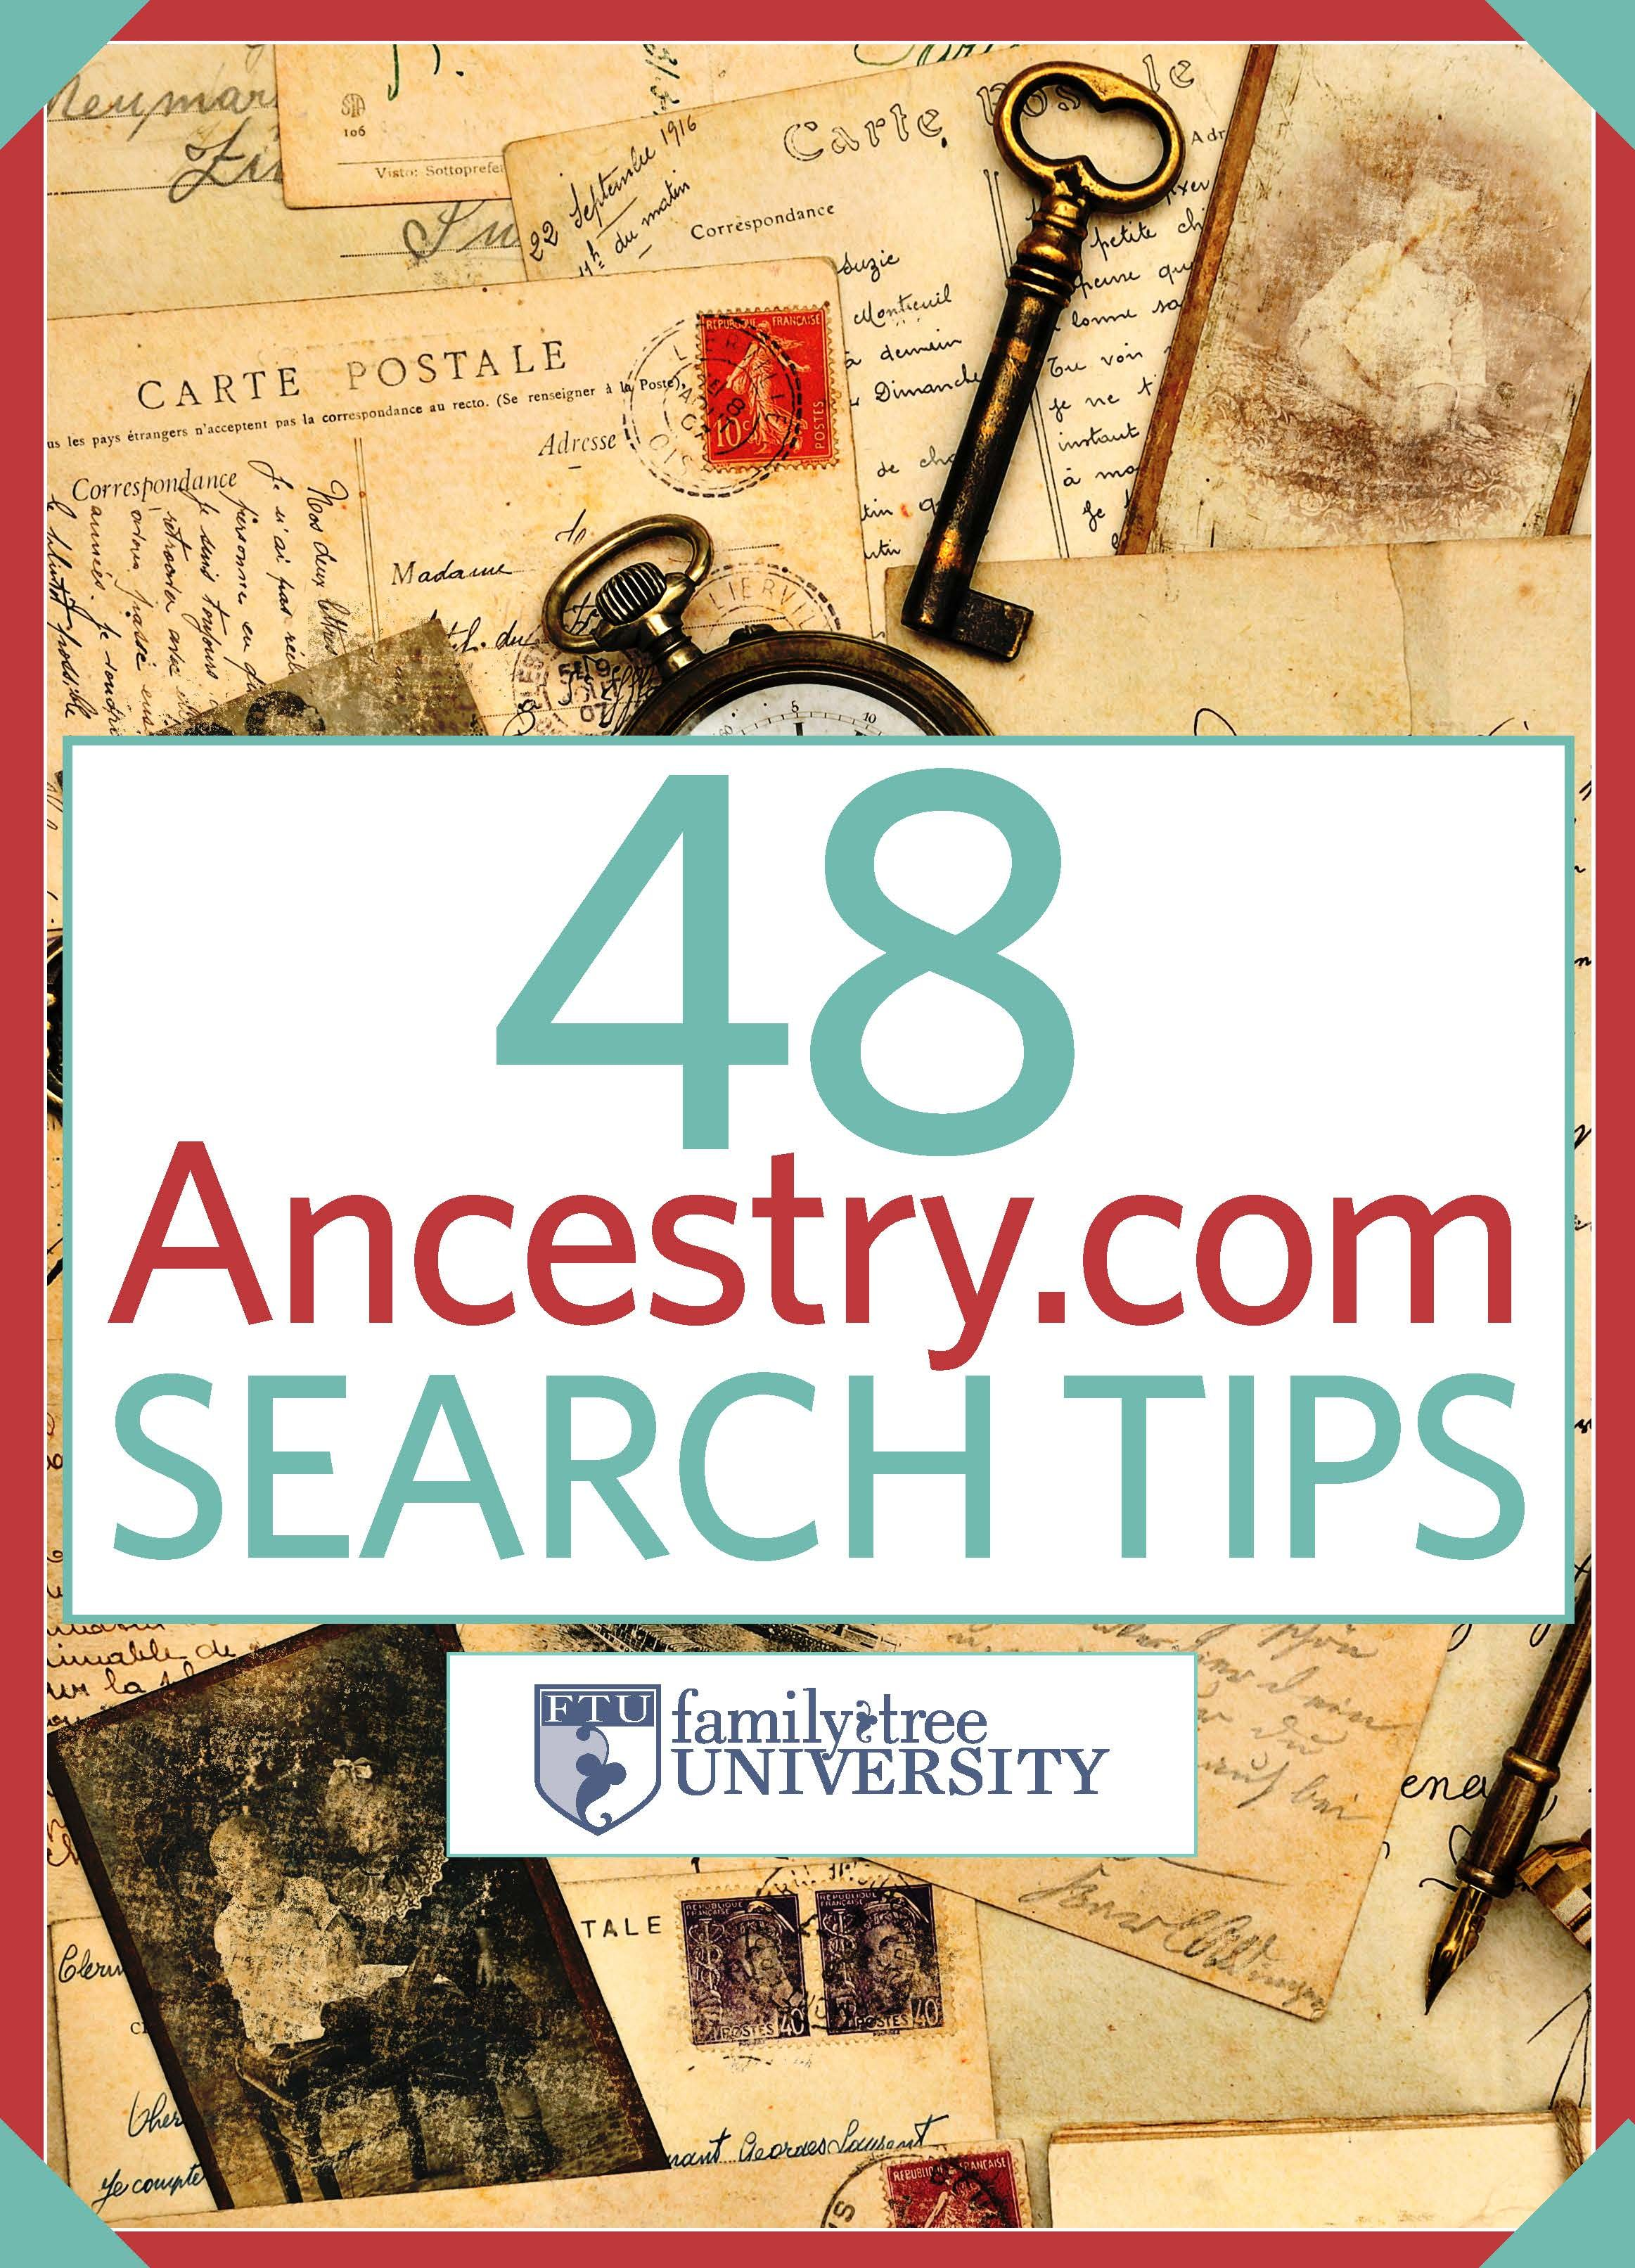 Search for Your Ancestor's Genealogy Information - Ancestry